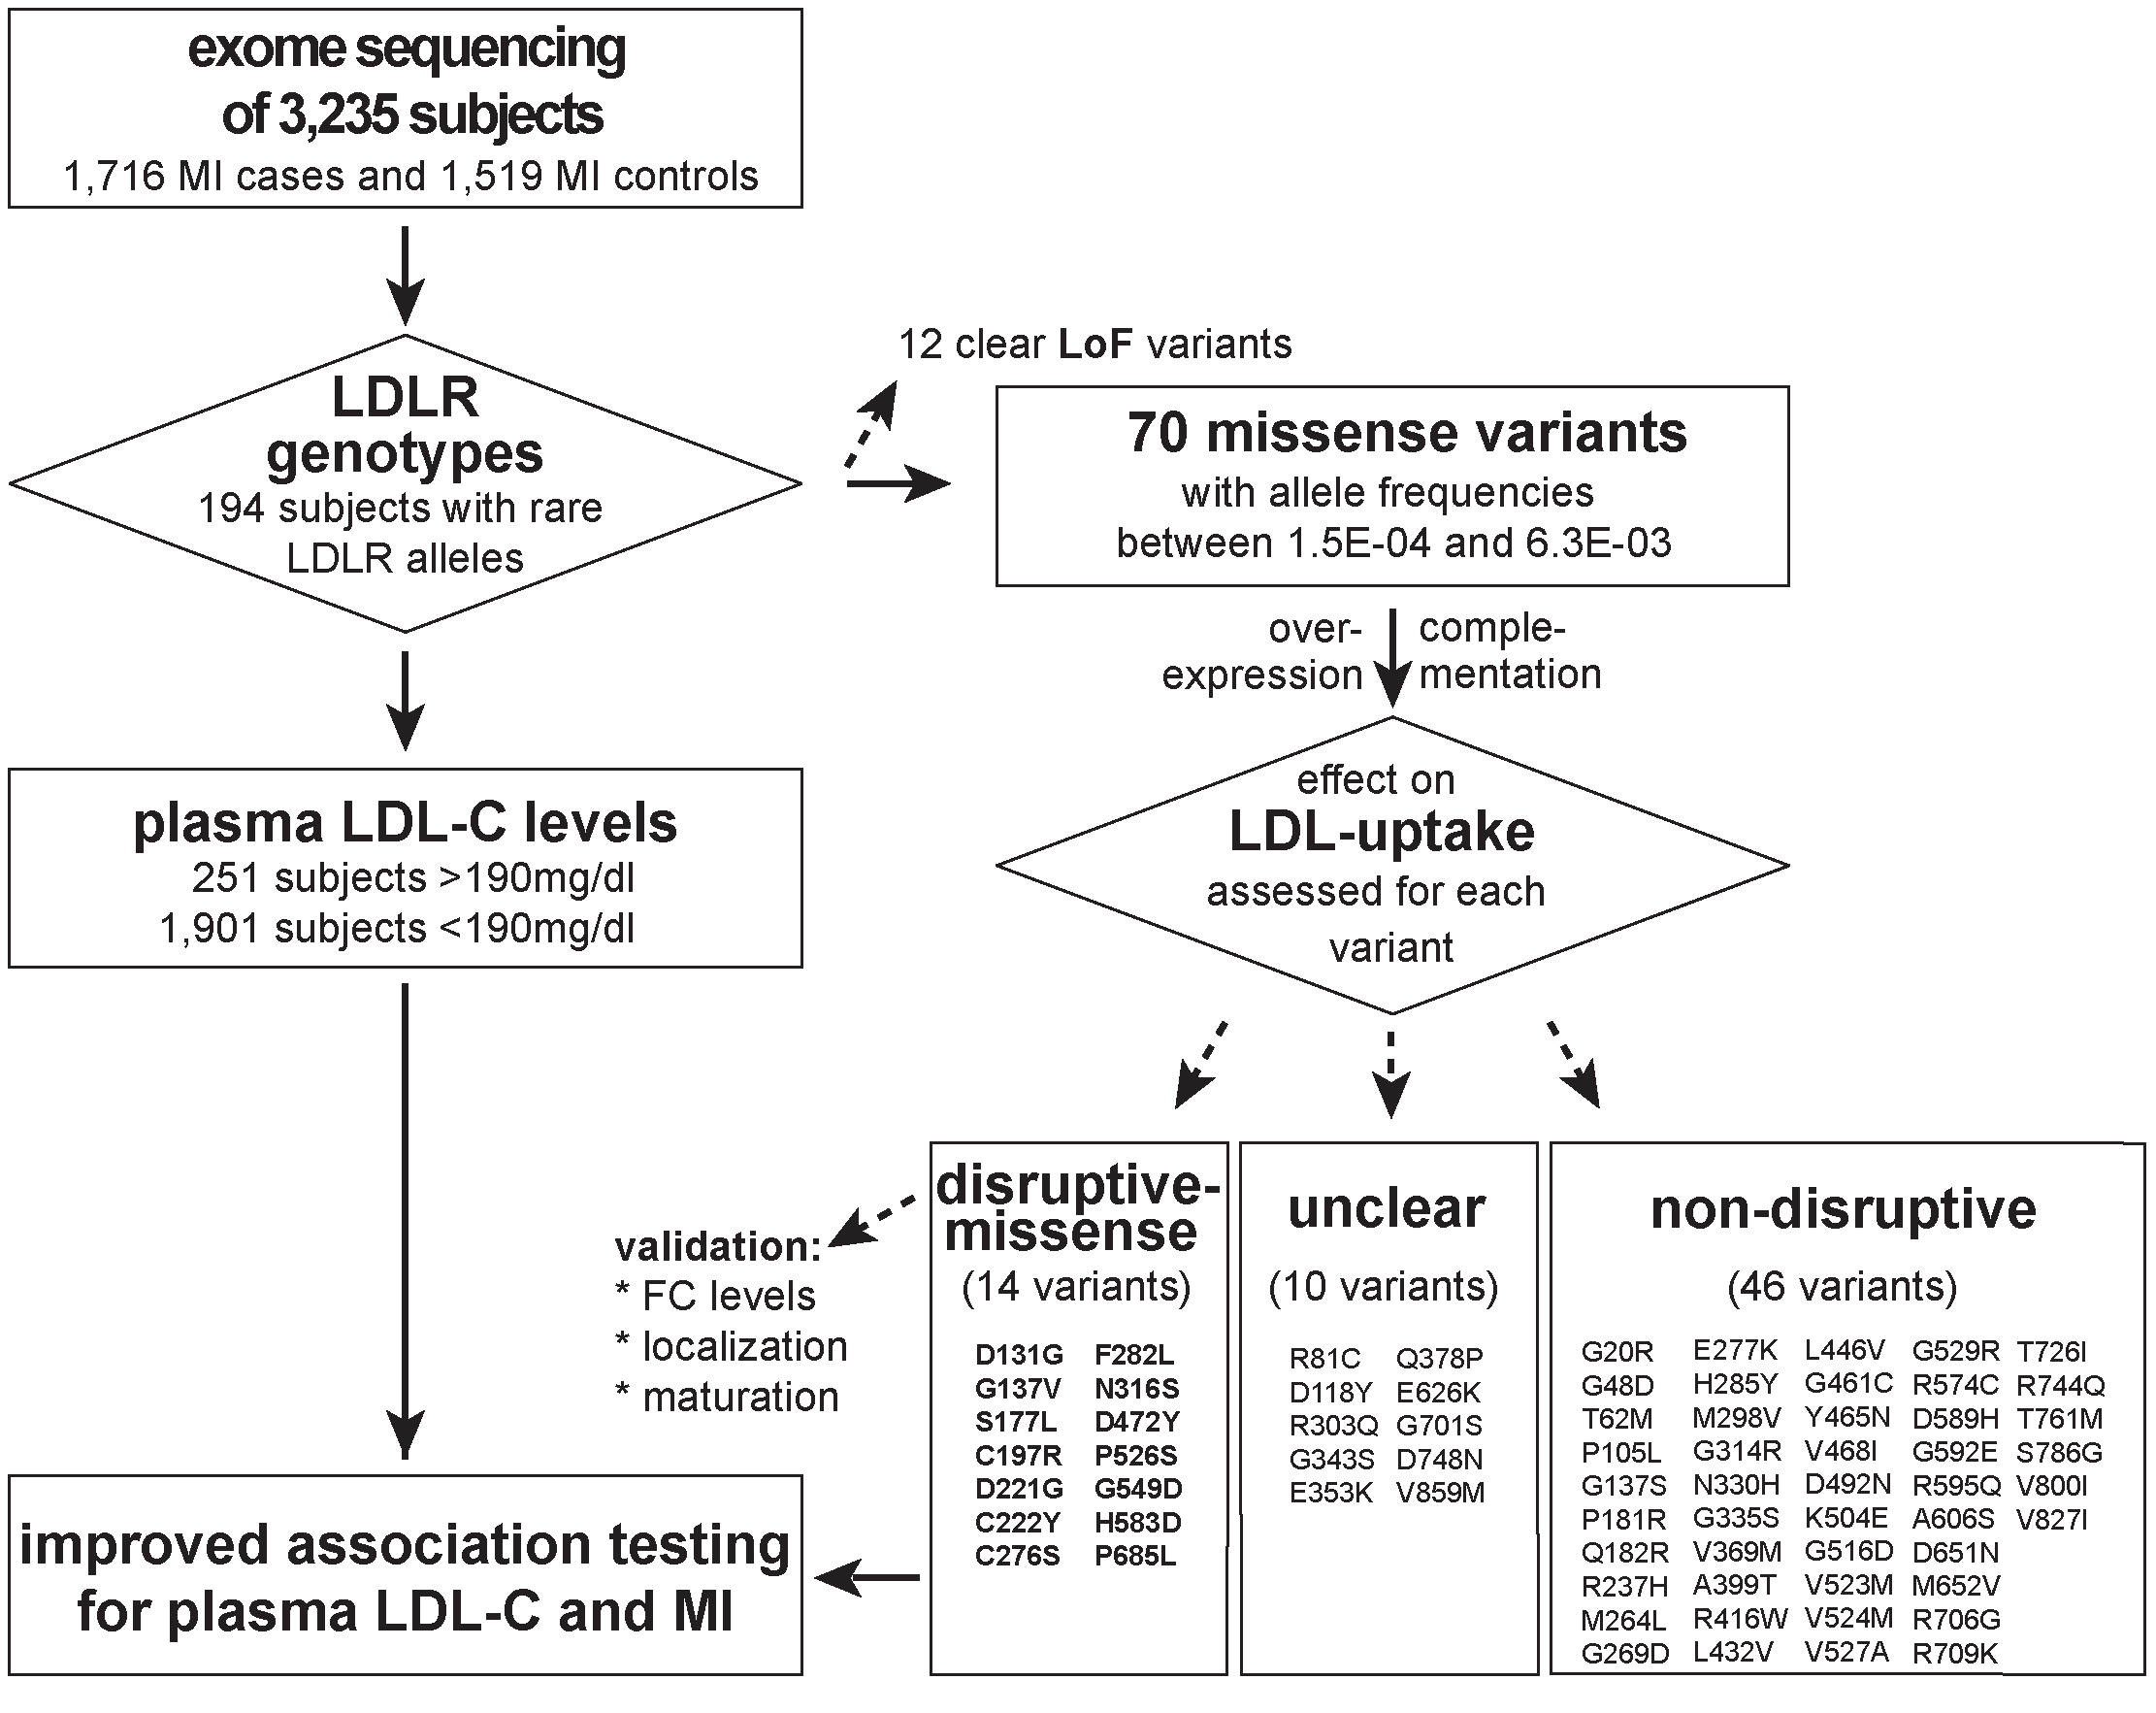 Workflow of this study to determine the functional impact of 70 rare missense variants on LDLR protein activities and improve rare variant association testing for plasma LDL-C and the risk for early-onset MI.